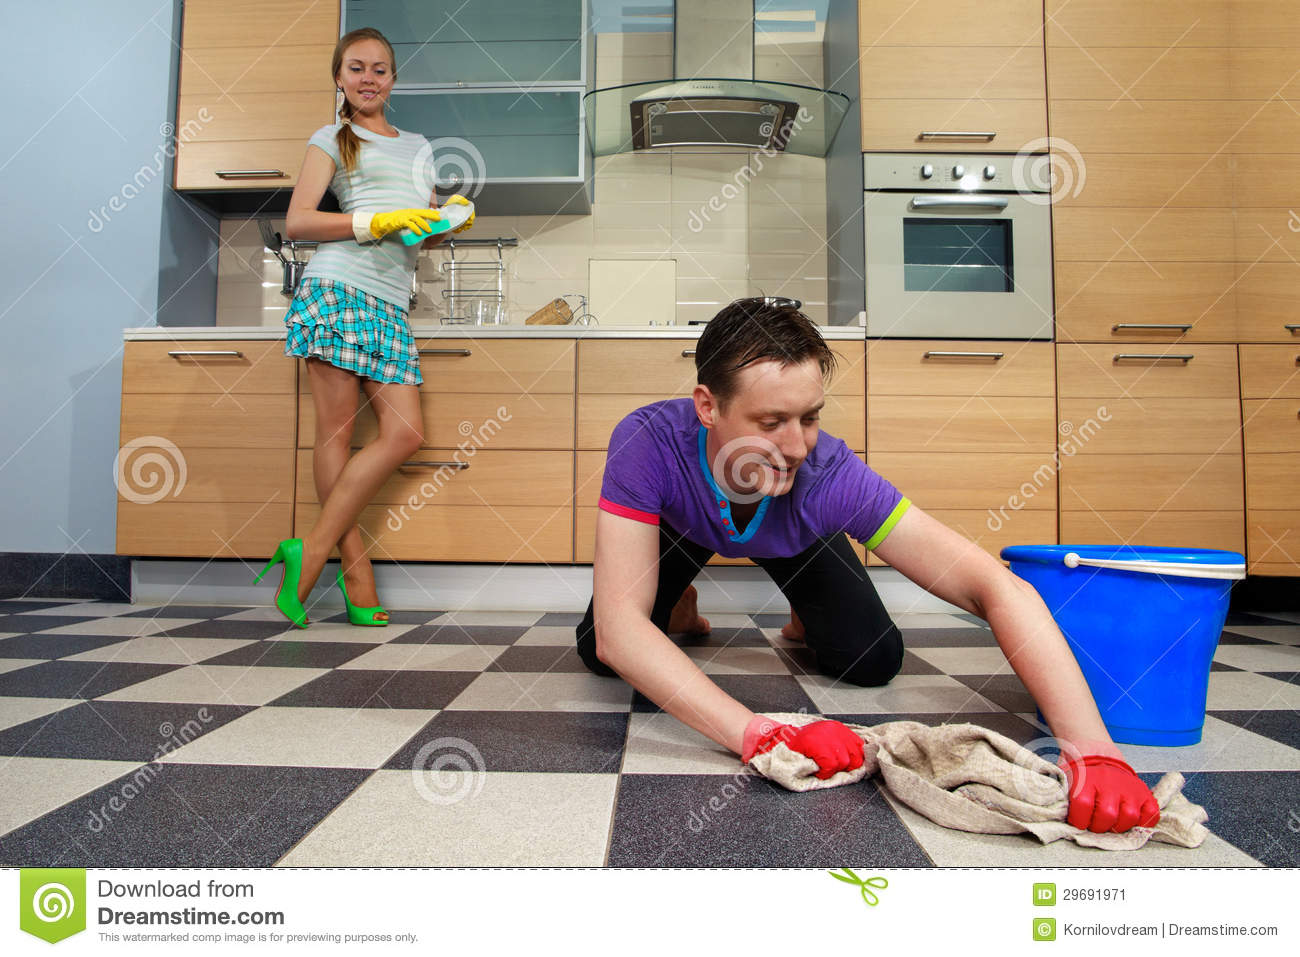 man cleaning floor stock image image of holding maid 29691971. Black Bedroom Furniture Sets. Home Design Ideas